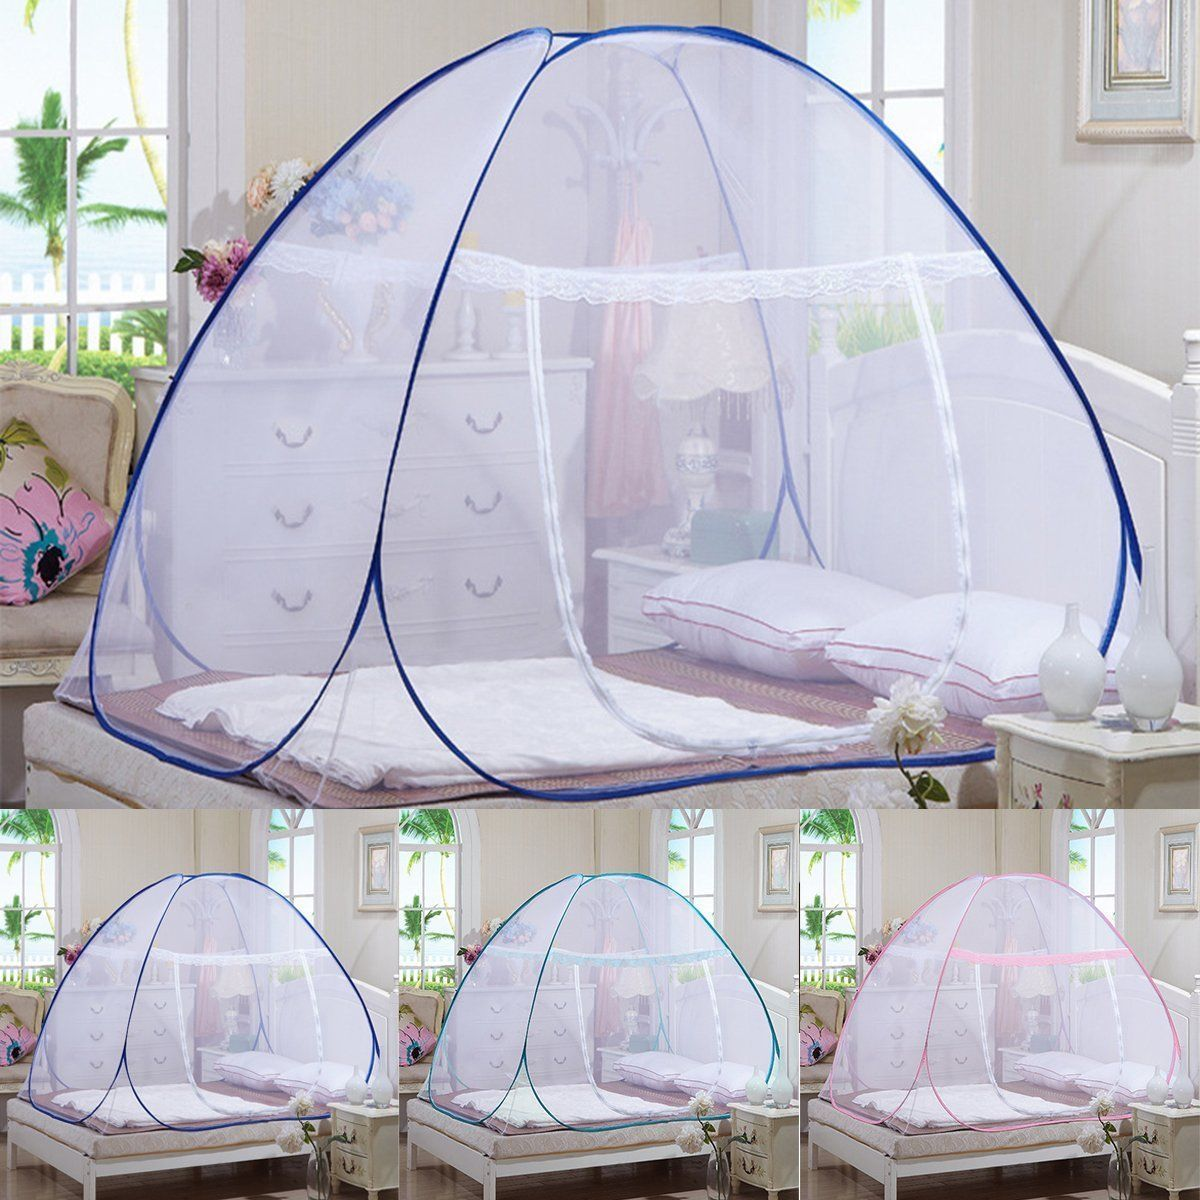 - Portable Pop Up Camping Tent Bed Canopy Mosquito Net Twin Full